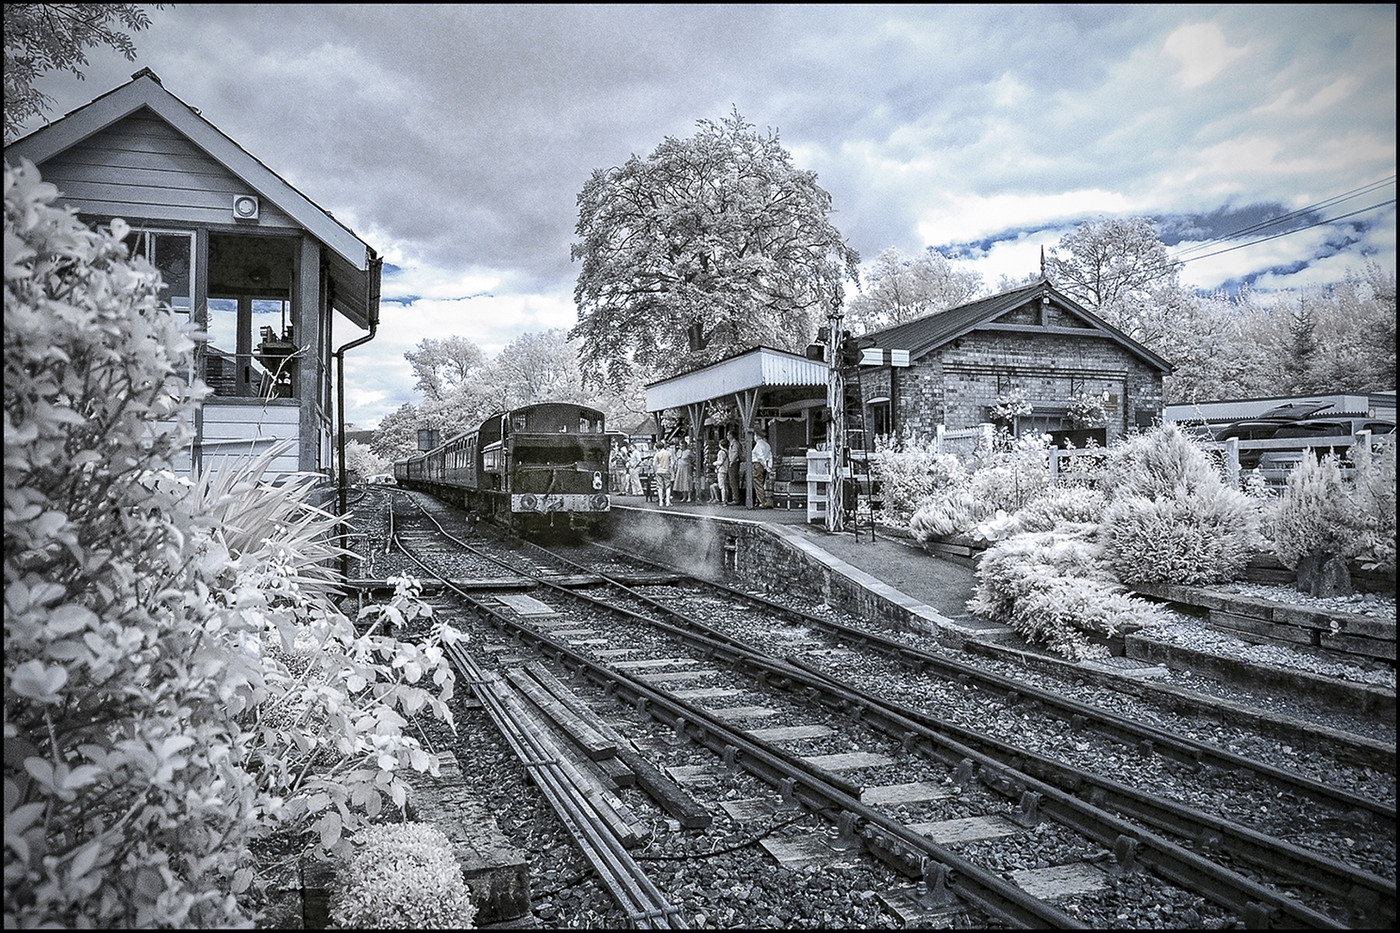 15 TENTERDEN STATION by Mick Dudley